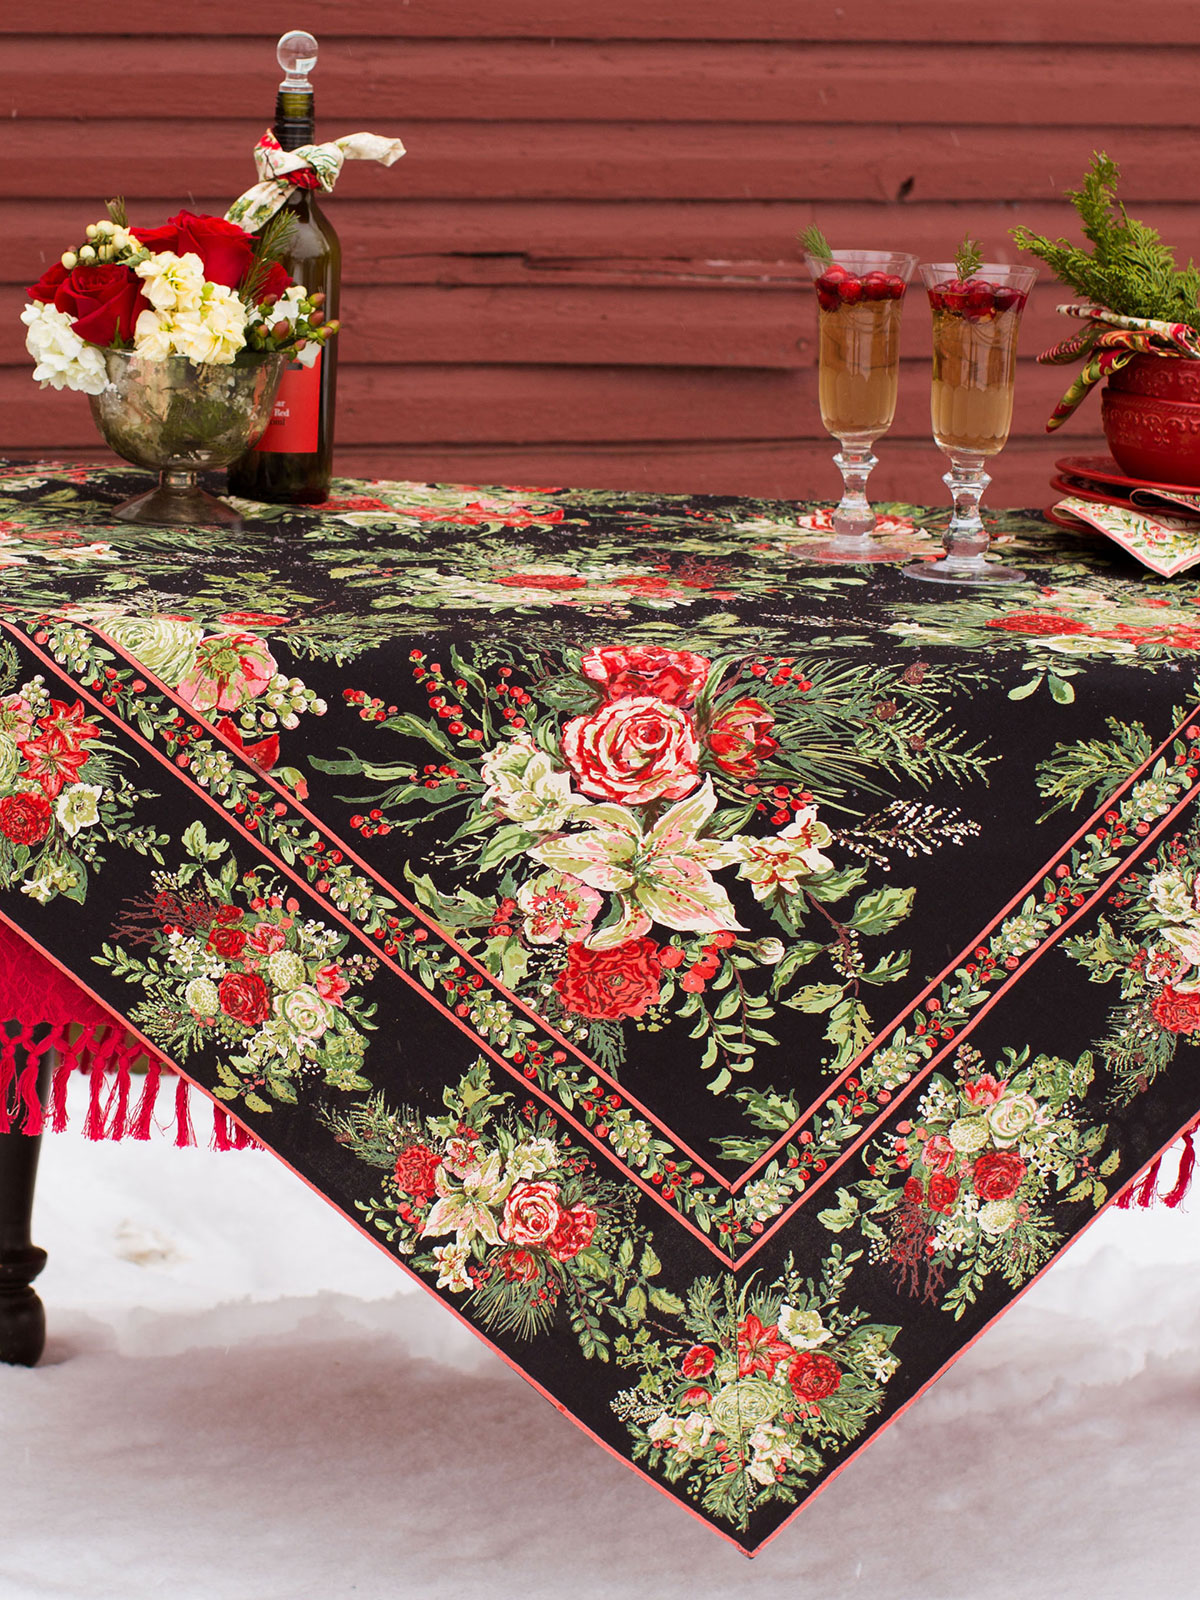 Tischdecken Weihnachten Merry Tablecloth - Black | Your Home, Christmas Forever